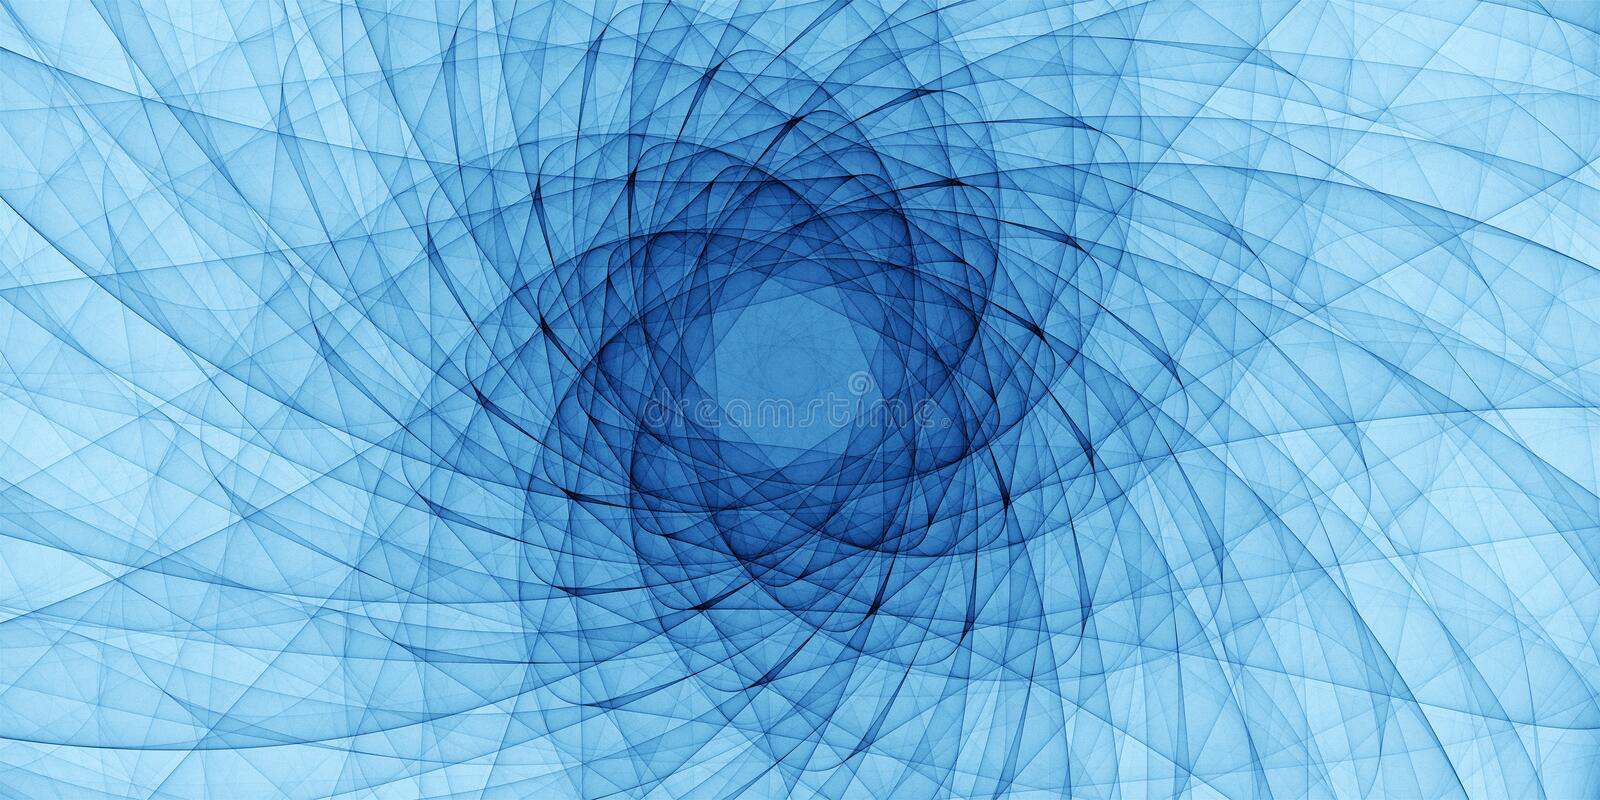 Blue abstract ornament. Detailed spiral drawing, art guilloche stock photo